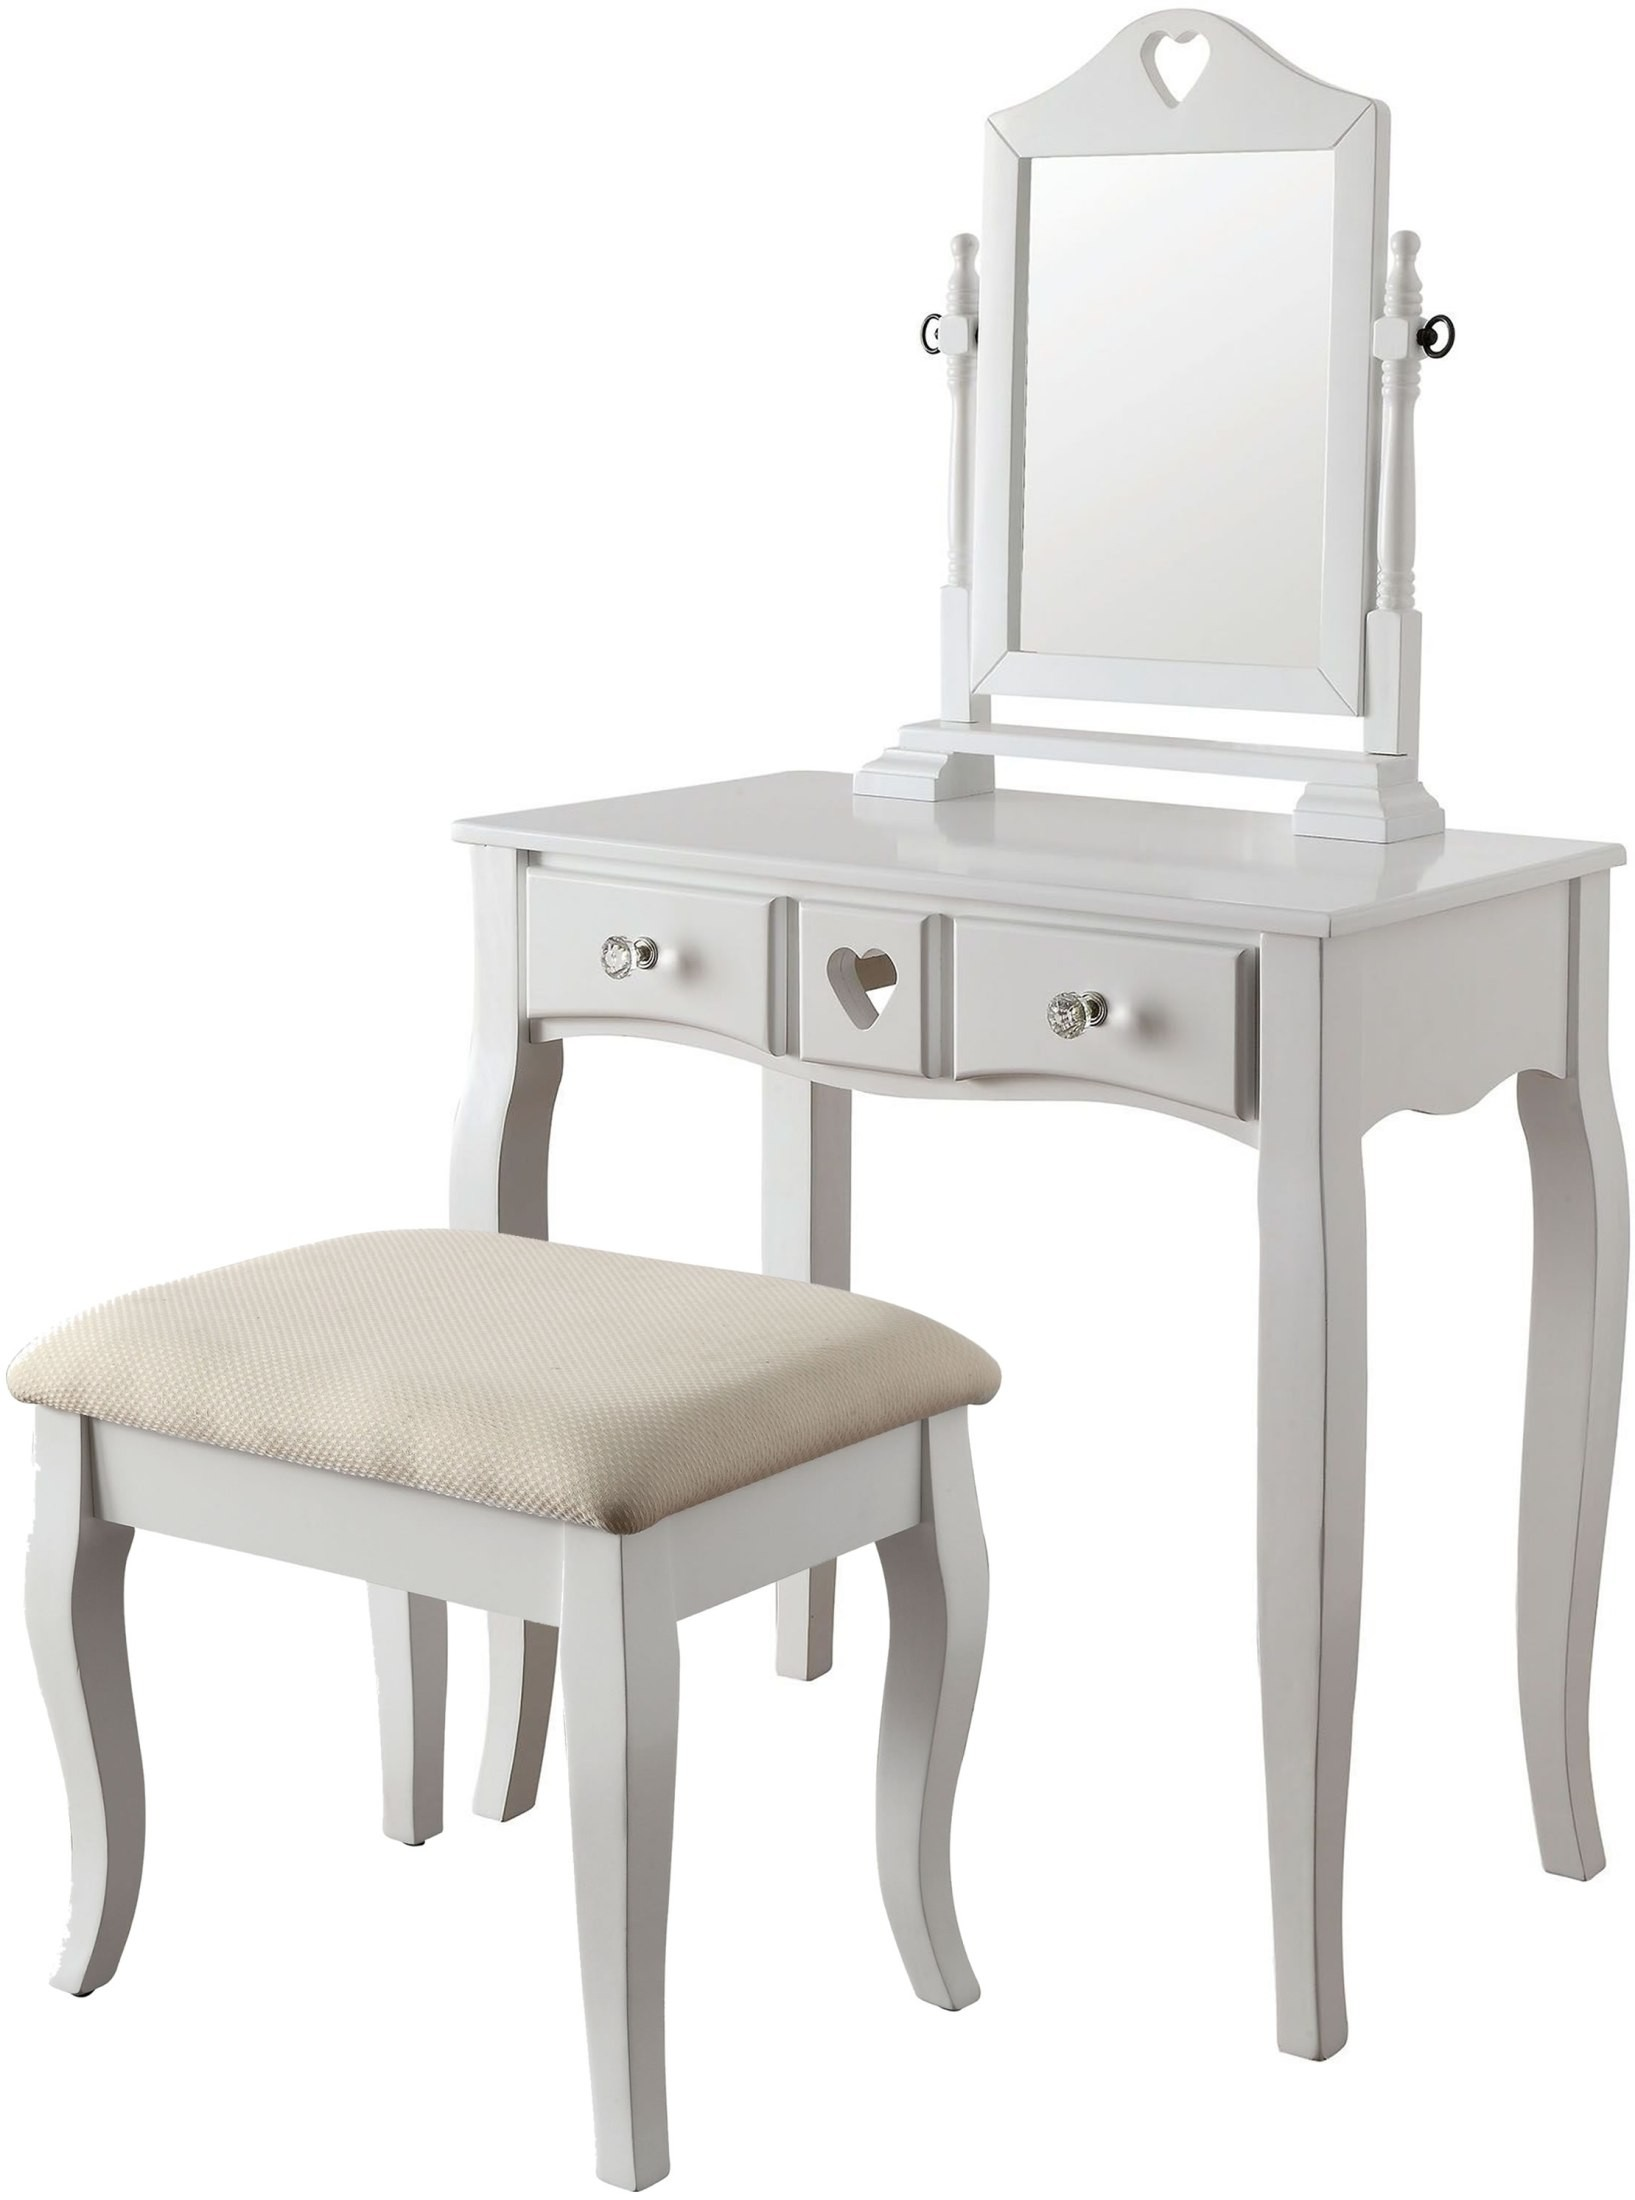 White Vanity Bench Seat Francine White Vanity With Stool From Furniture Of America